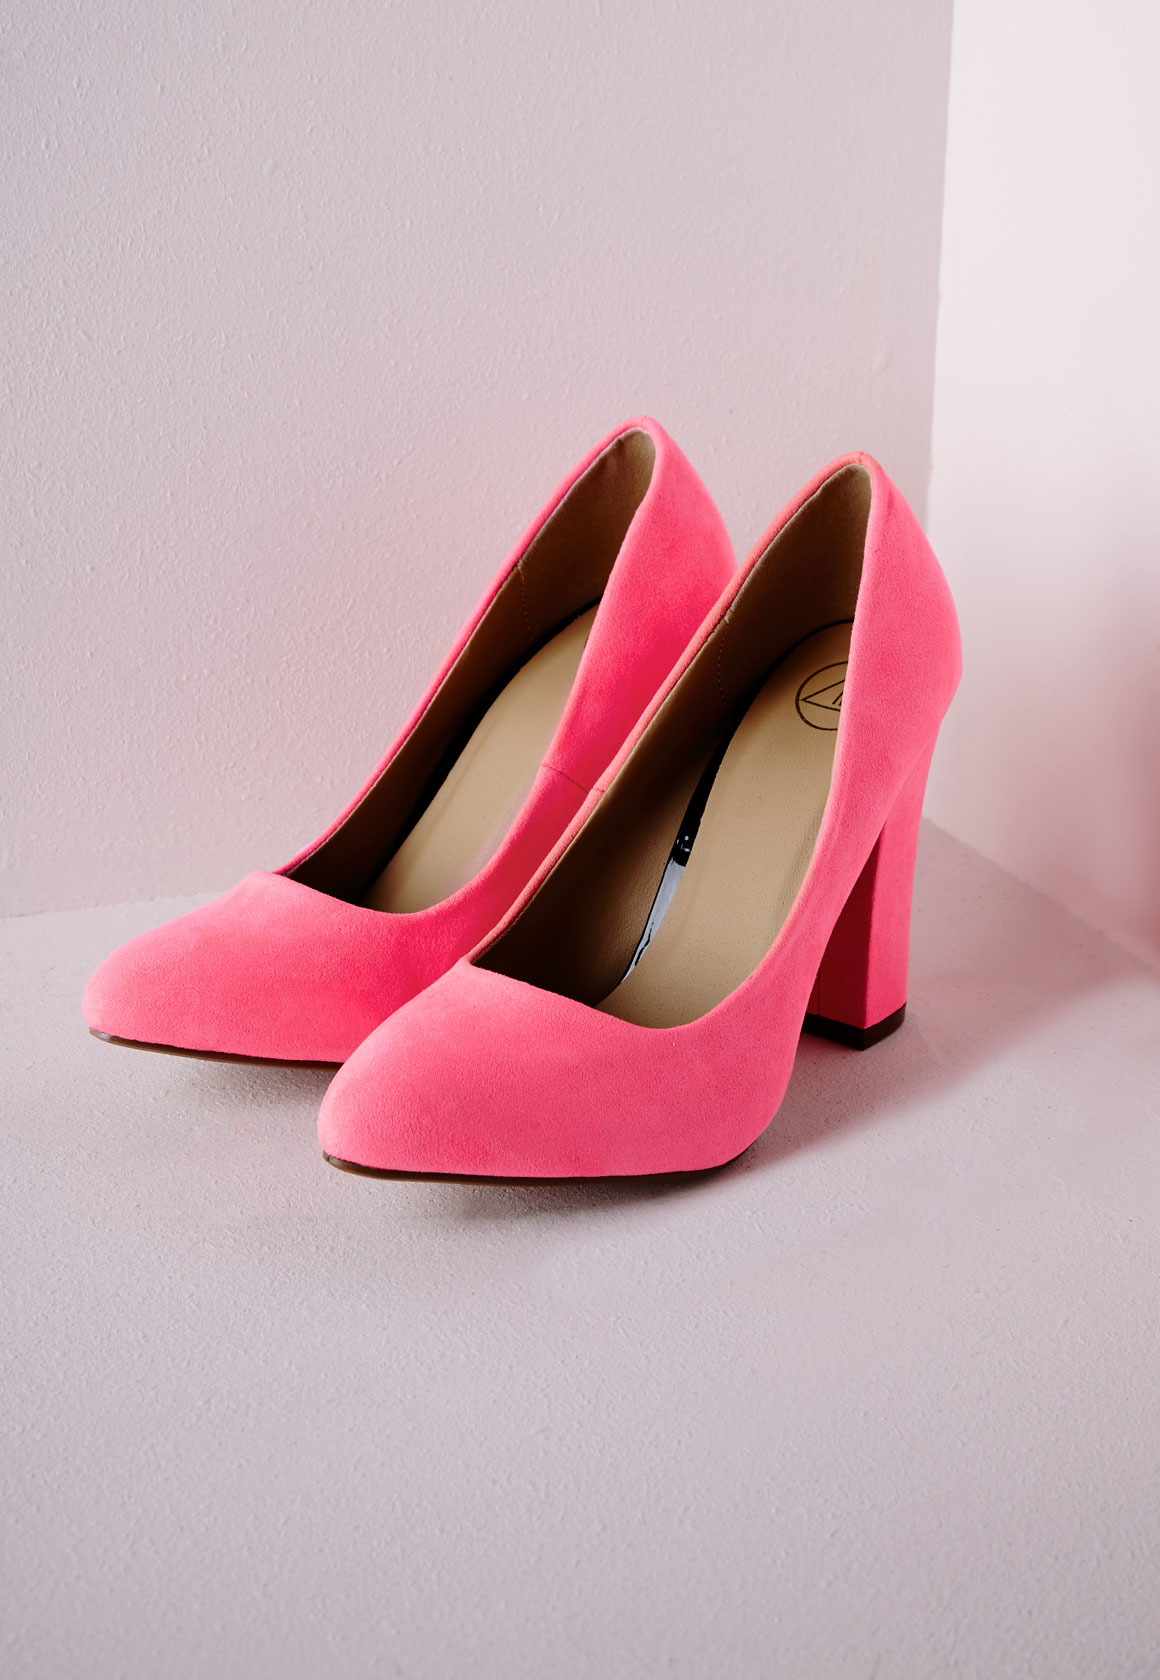 1a748838c4a Lyst - Missguided Block Heel Pumps Neon Pink in Pink